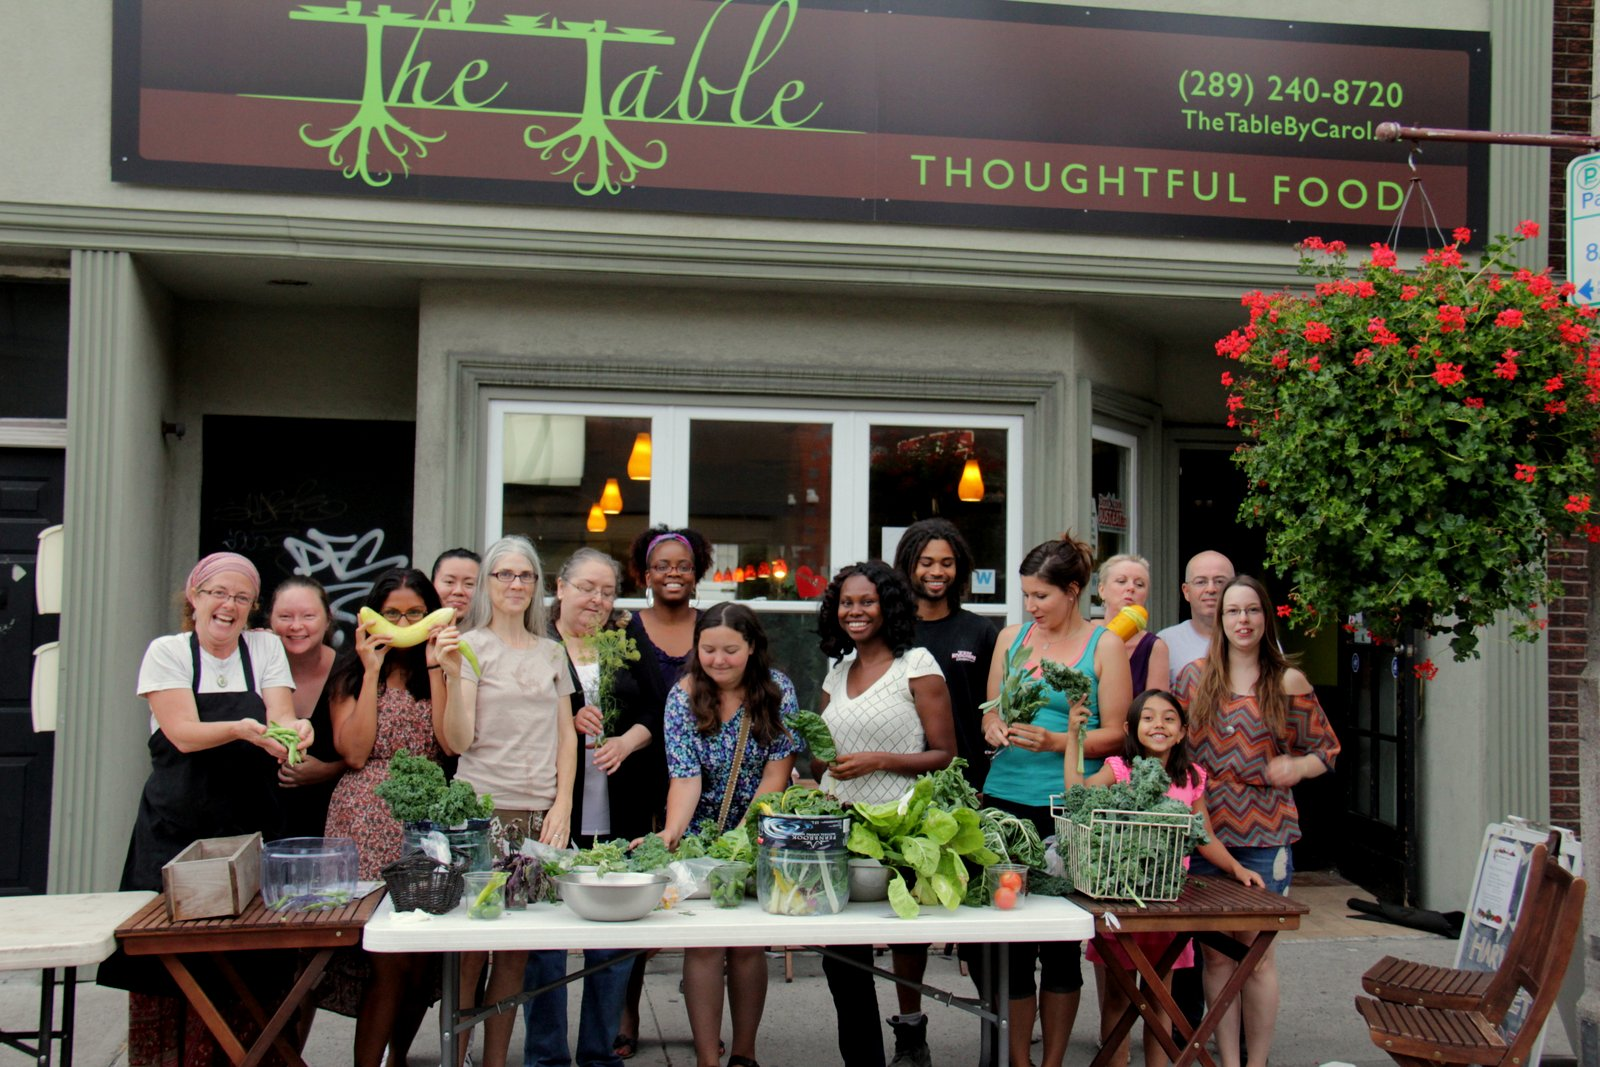 We Grow Food Trading Table ...   #FoodisFree #WeGrowFood